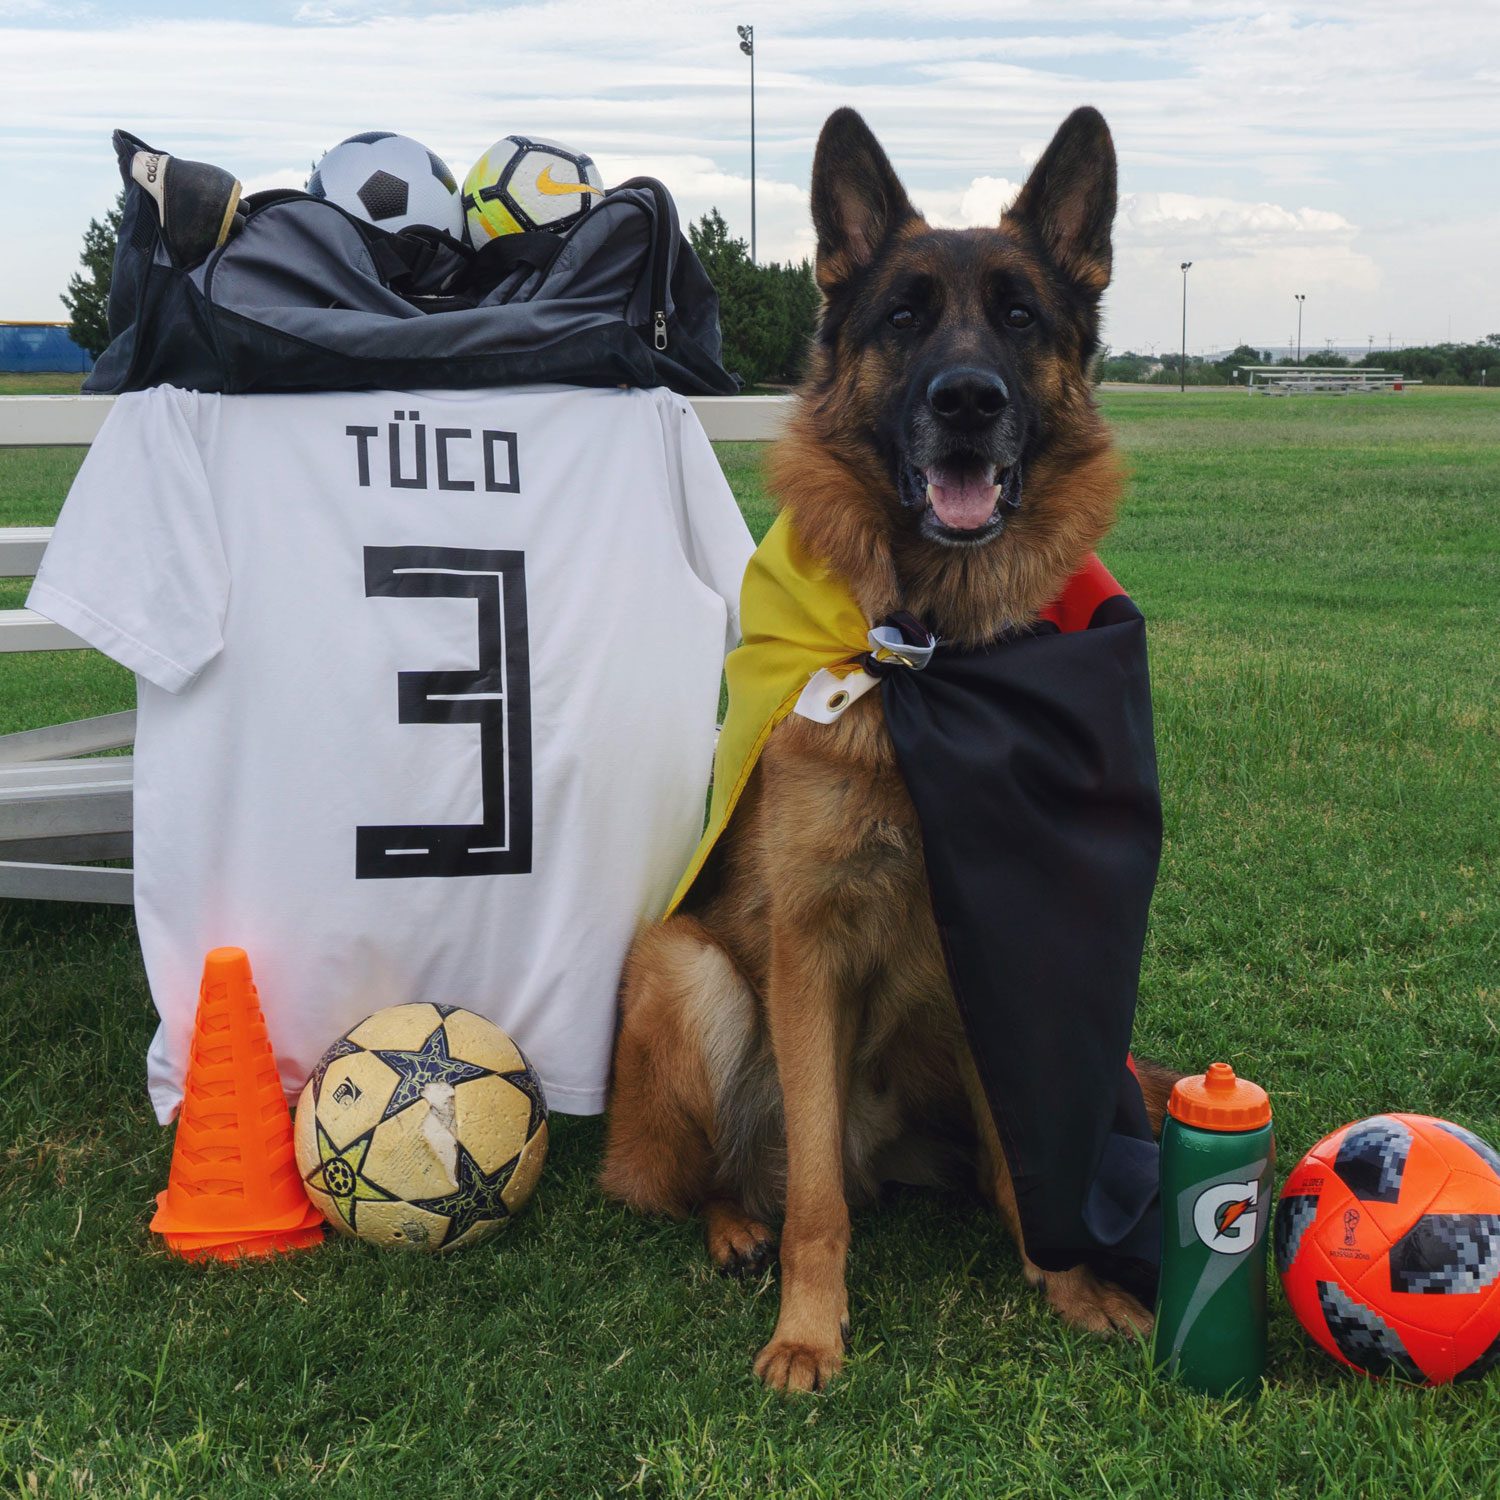 Tuco's home country might be out of the  #worldcup  but he's still their number 1 fan. Happy birthday to our soccer-lovin' 3-year-old! ⚽️🇩🇪 #seetucogrow   #tucodiaries  #diemannschaft   #gsd